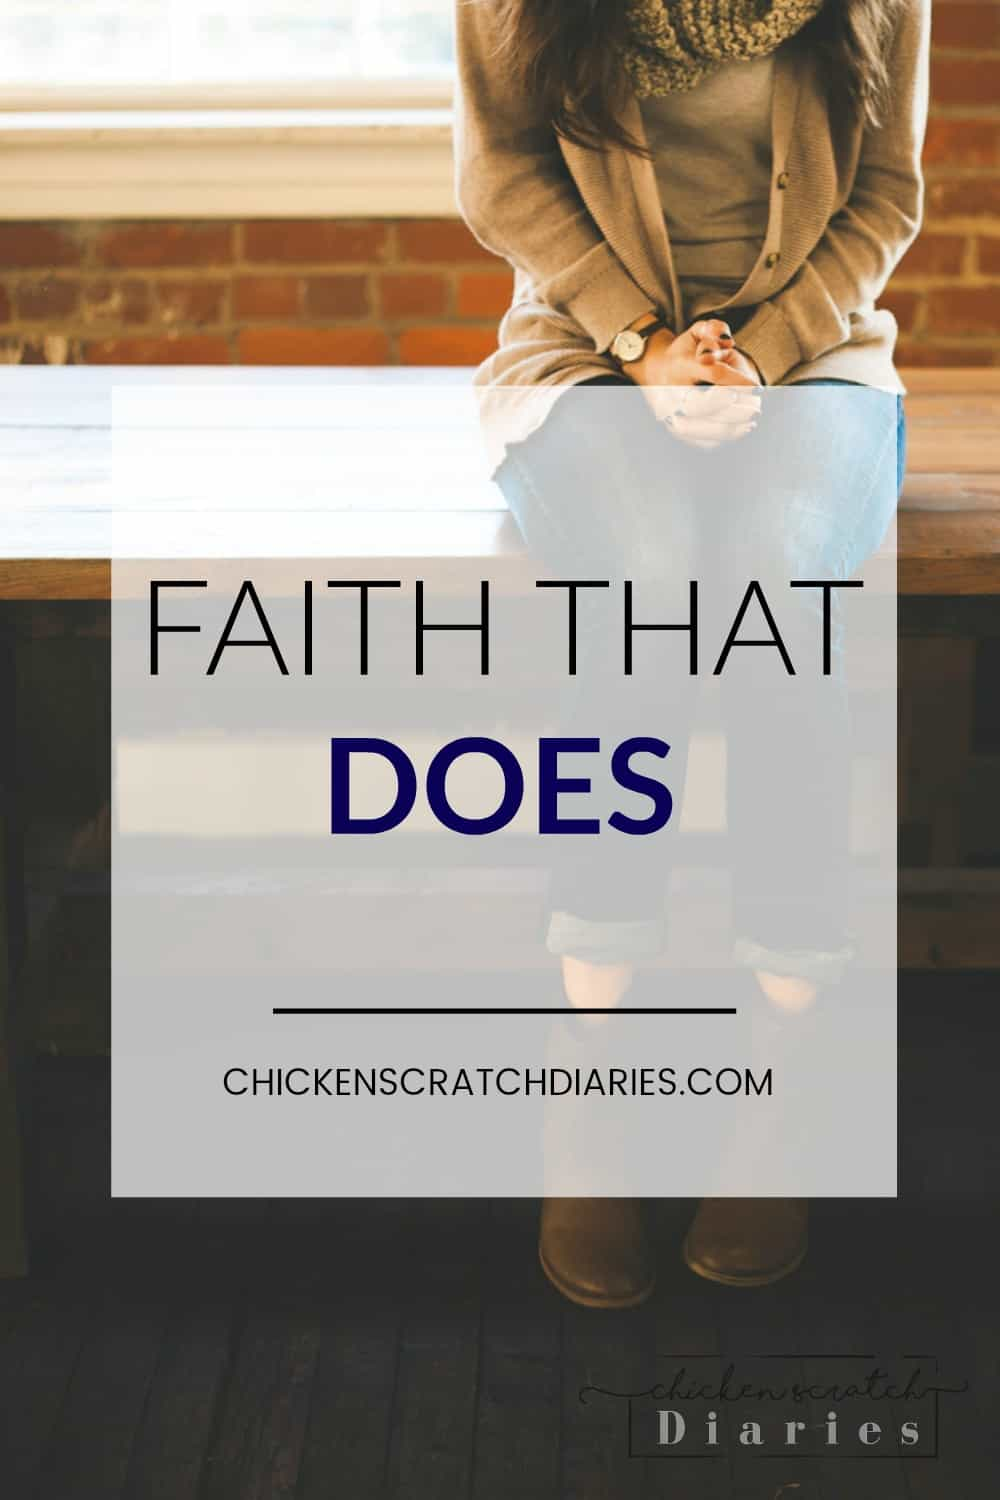 Faith in action - does your faith shine in trials or get buried under pressure? #Faith #Christian #Women #Inspiration